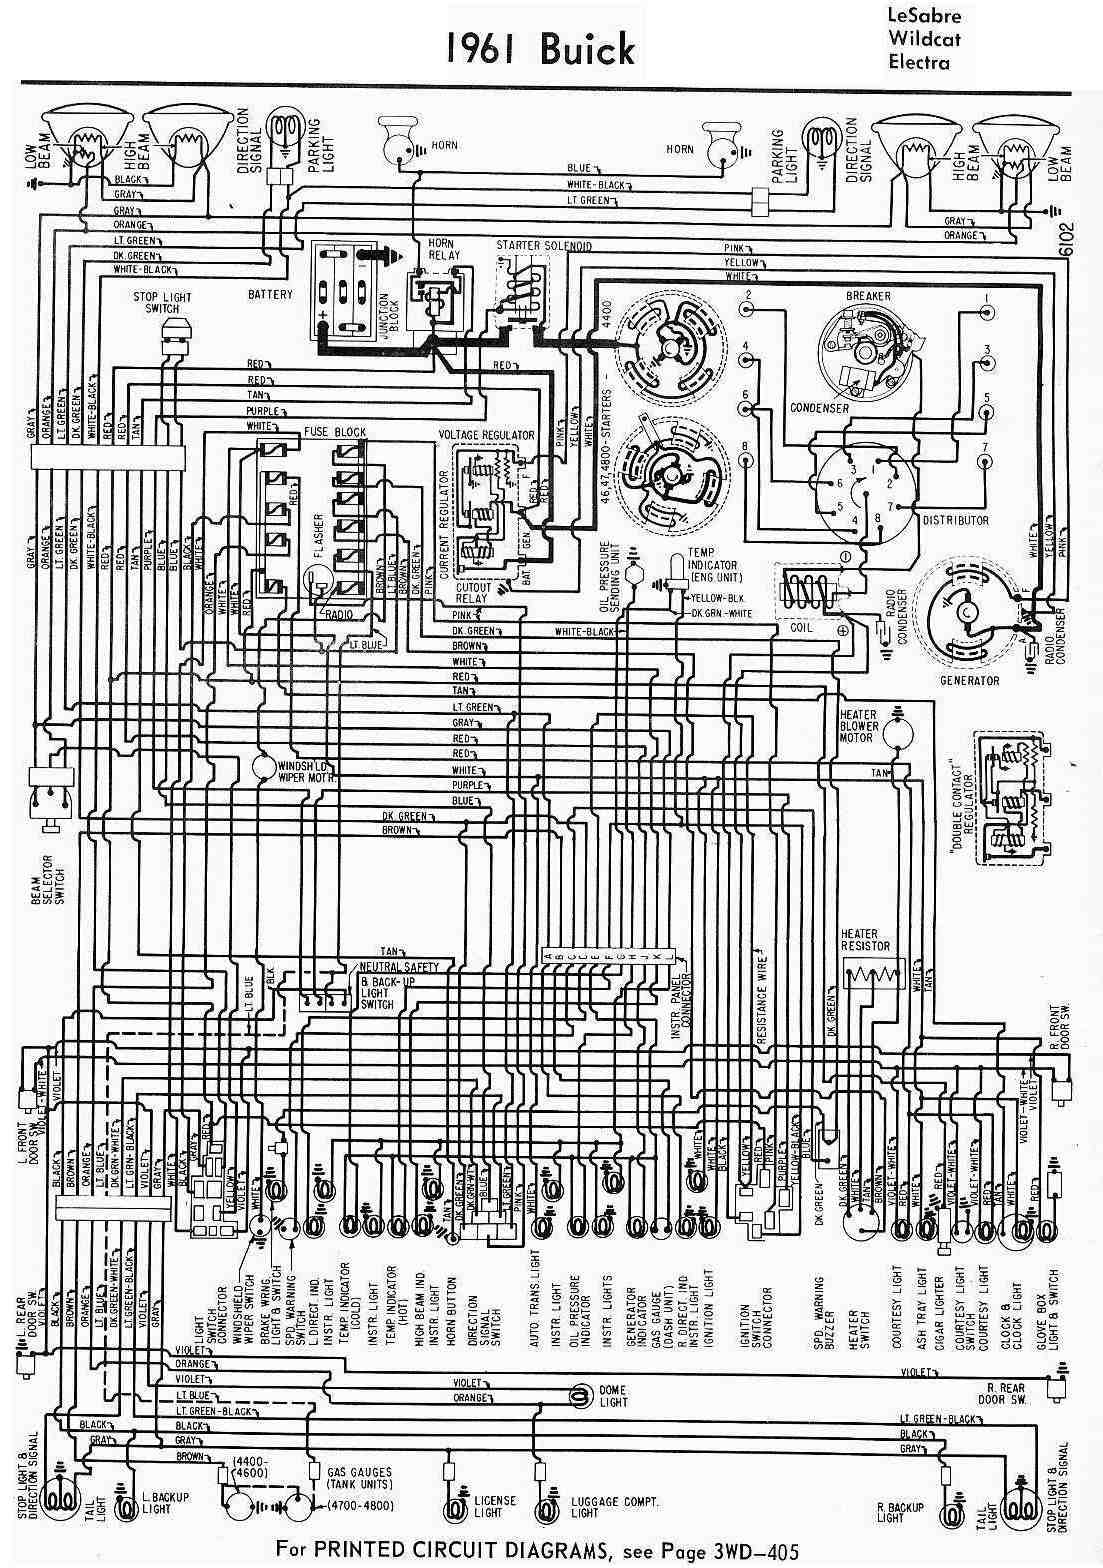 small resolution of 97 buick lesabre wiring diagram wiring diagram db 1997 buick lesabre fuse diagram 1997 buick lesabre diagram